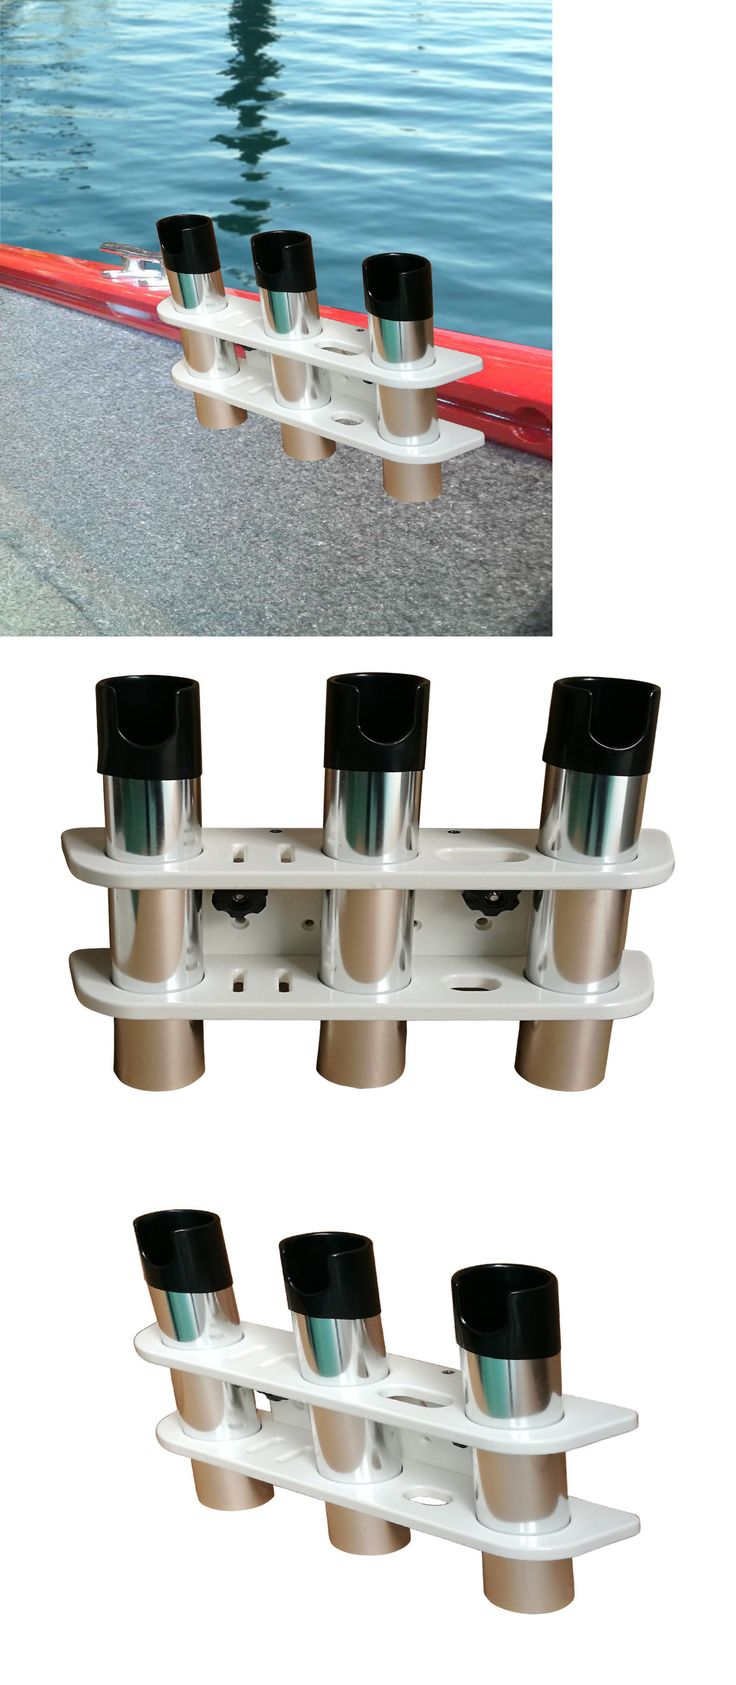 Rod Rests and Holders 72665: Brocraft Rod Holder For Tracker Boat - Versatrack System -3 Rods Storage -> BUY IT NOW ONLY: $51.99 on eBay!